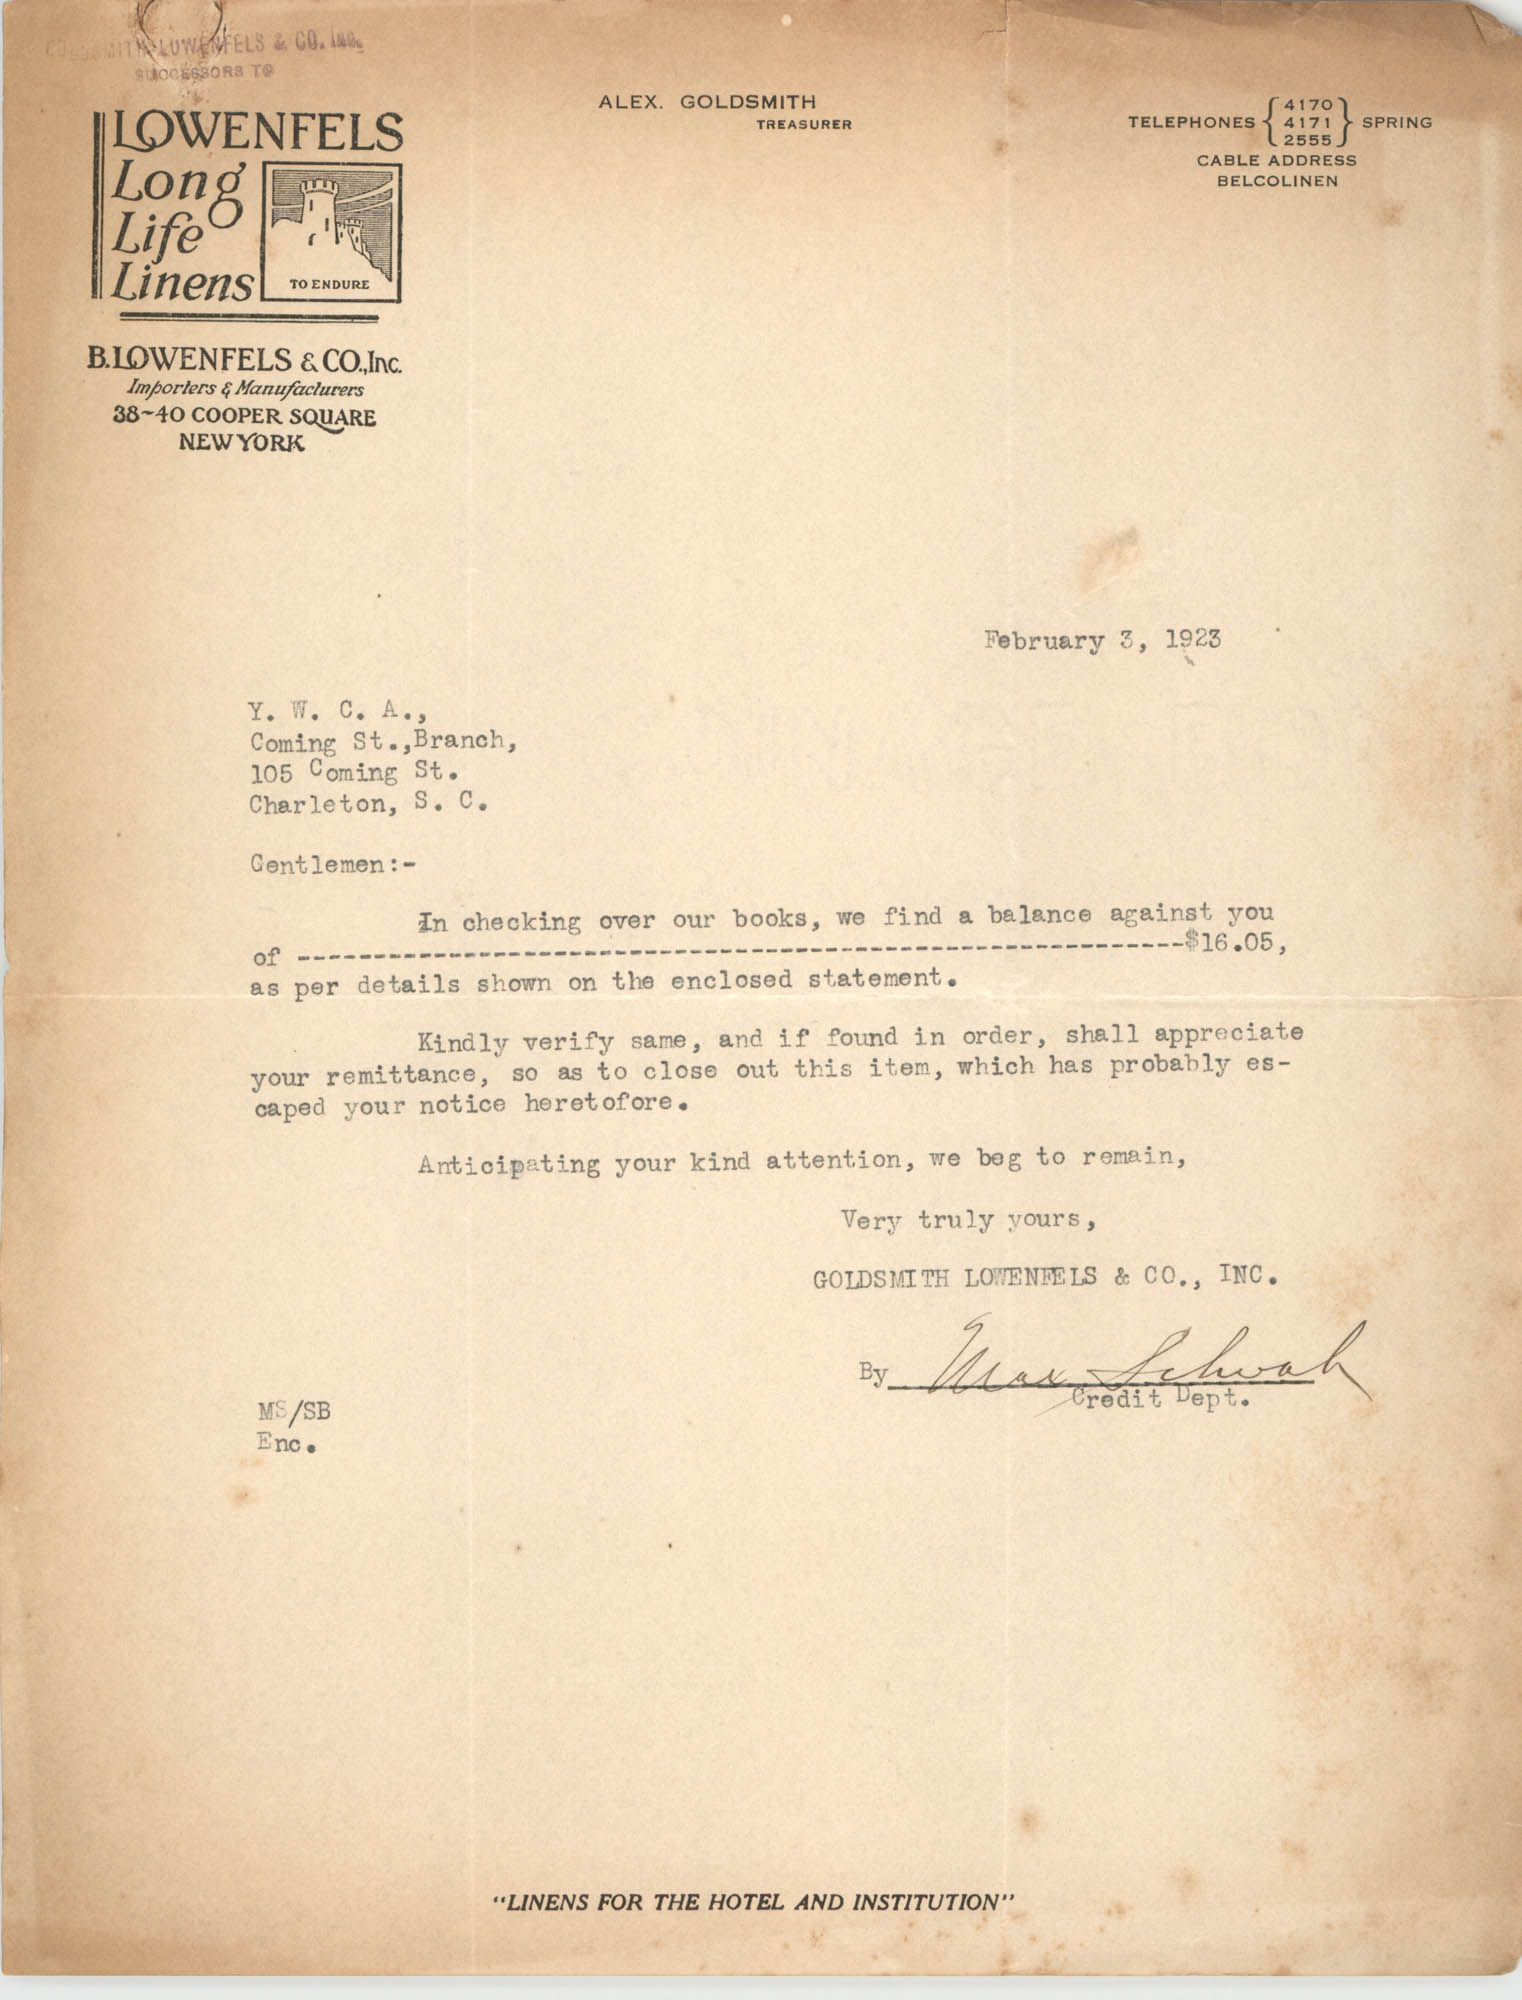 Letter from Goldsmith, Lowenfels and Co., Inc. to Coming Street Y.W.C.A., February 3, 1923